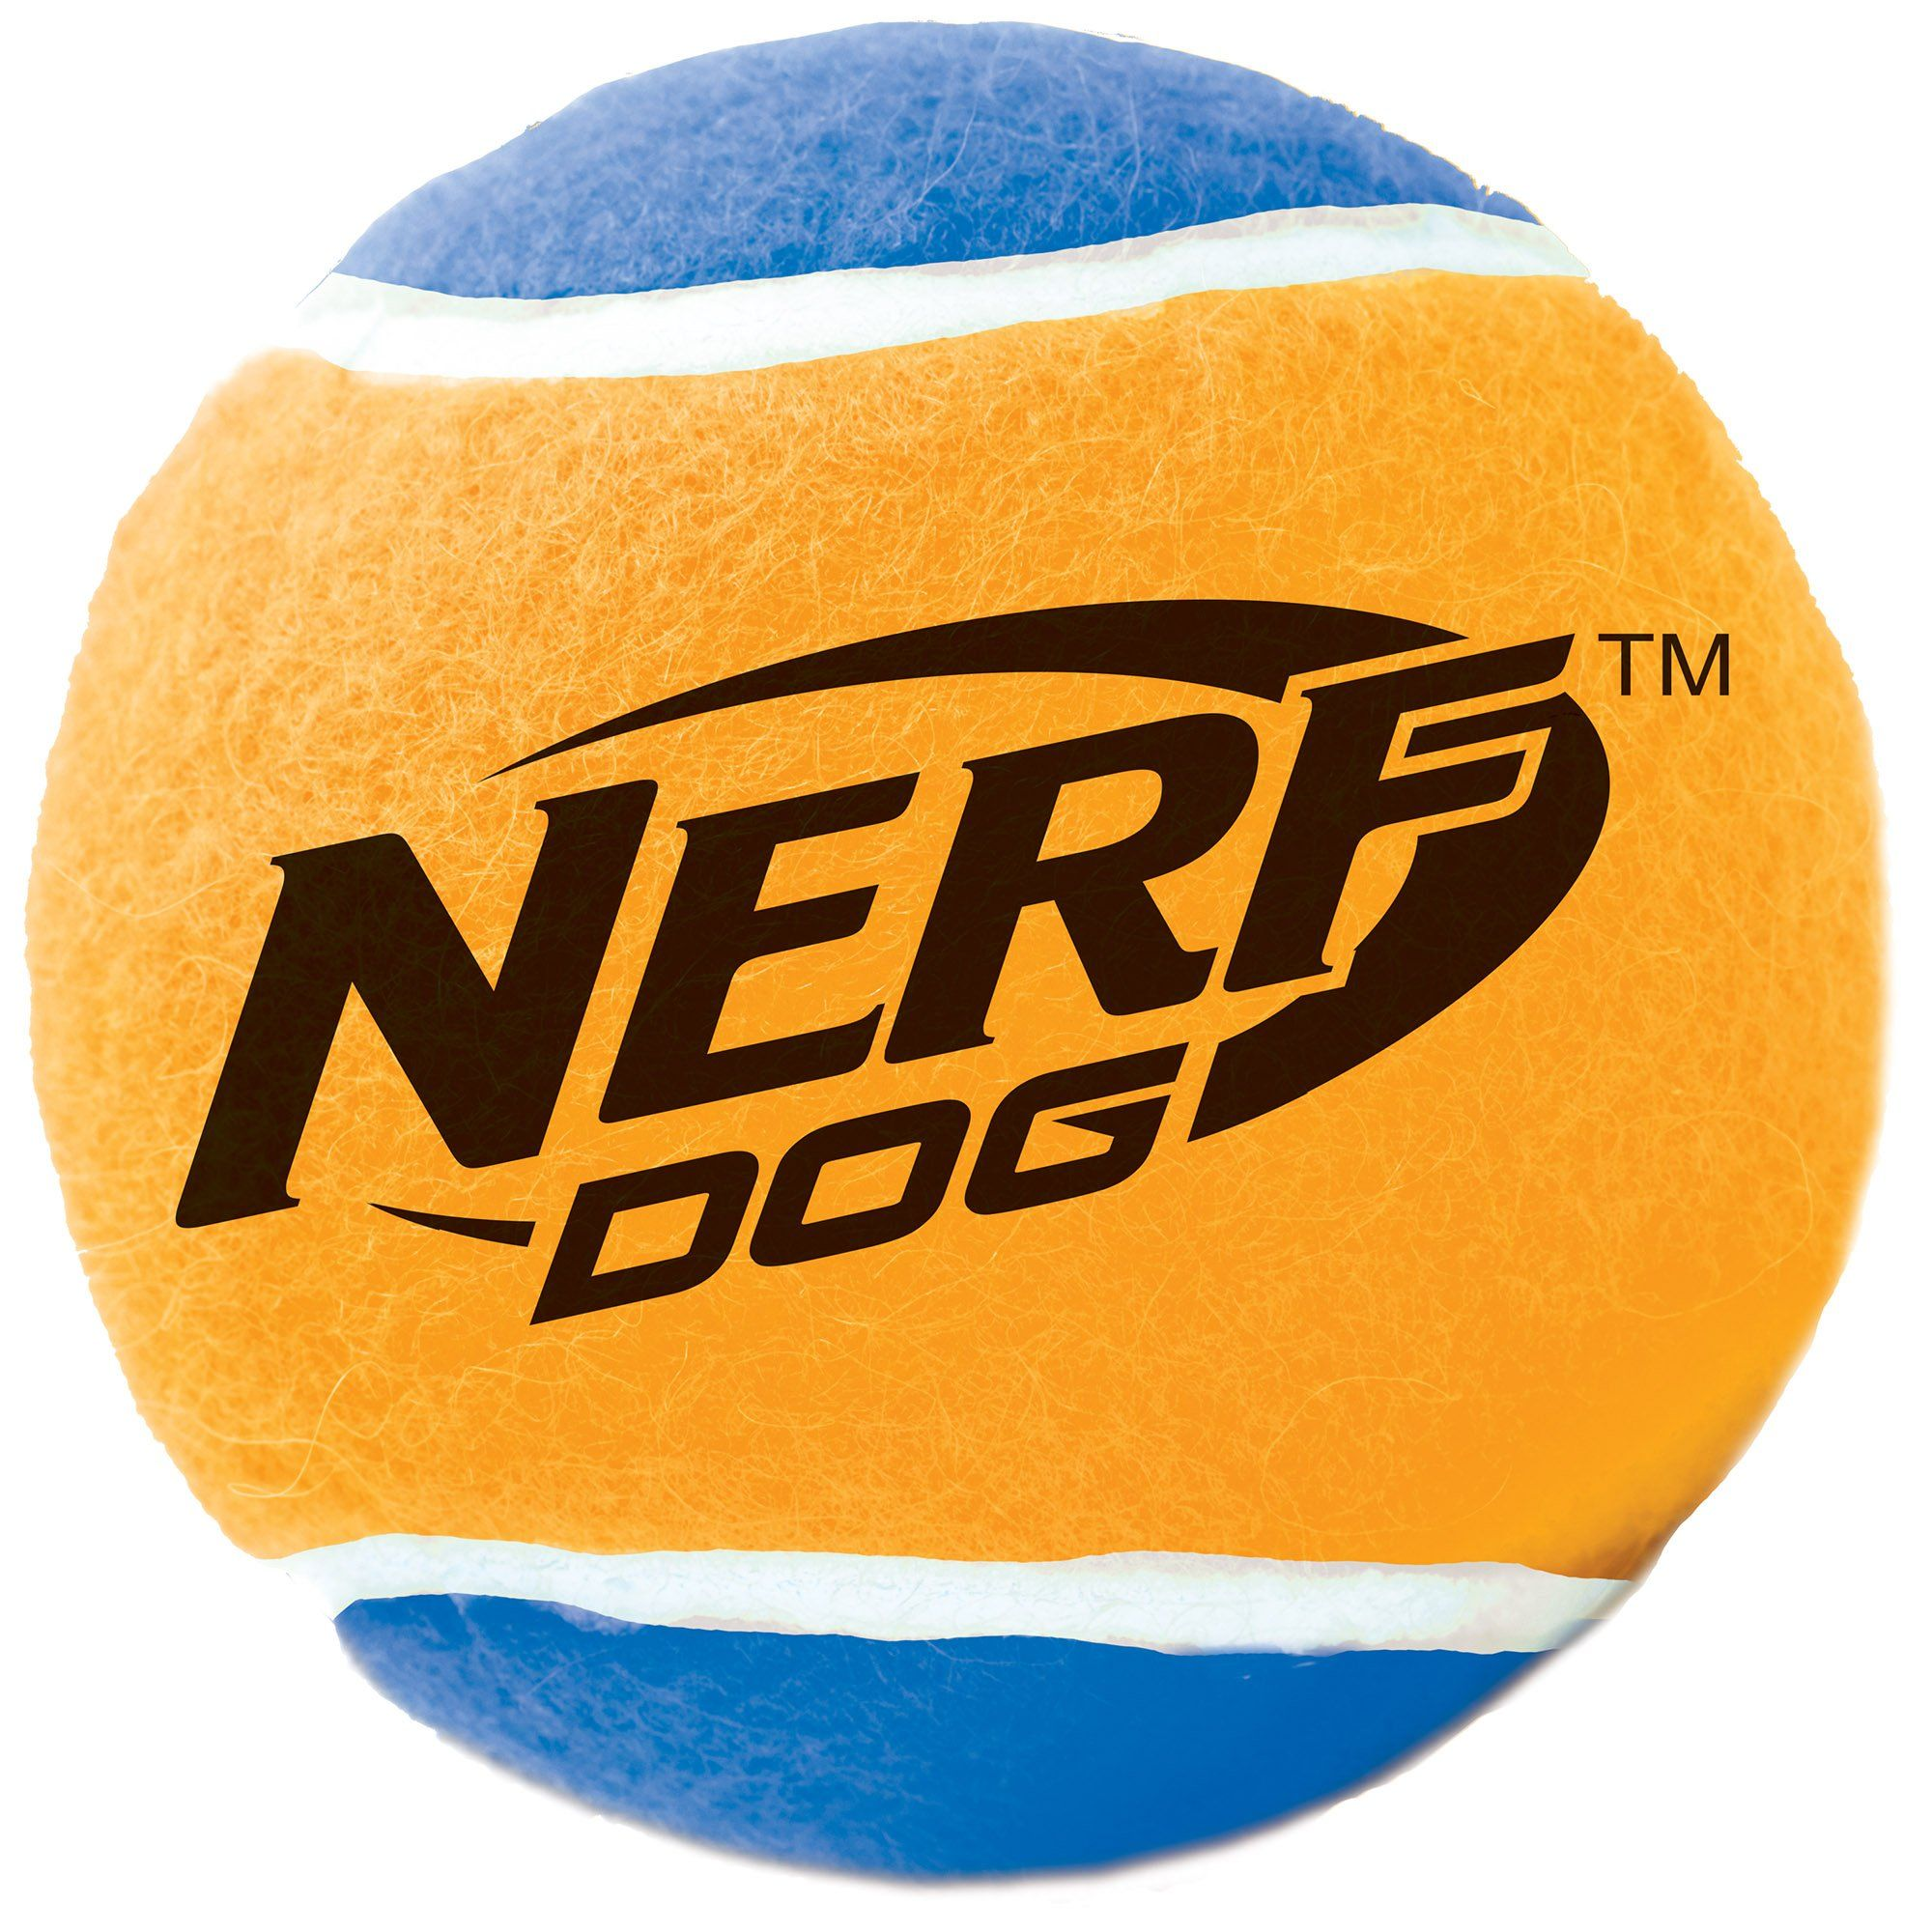 Nerf Dog Rubber Tennis Ball X Small In 2019 Products Small